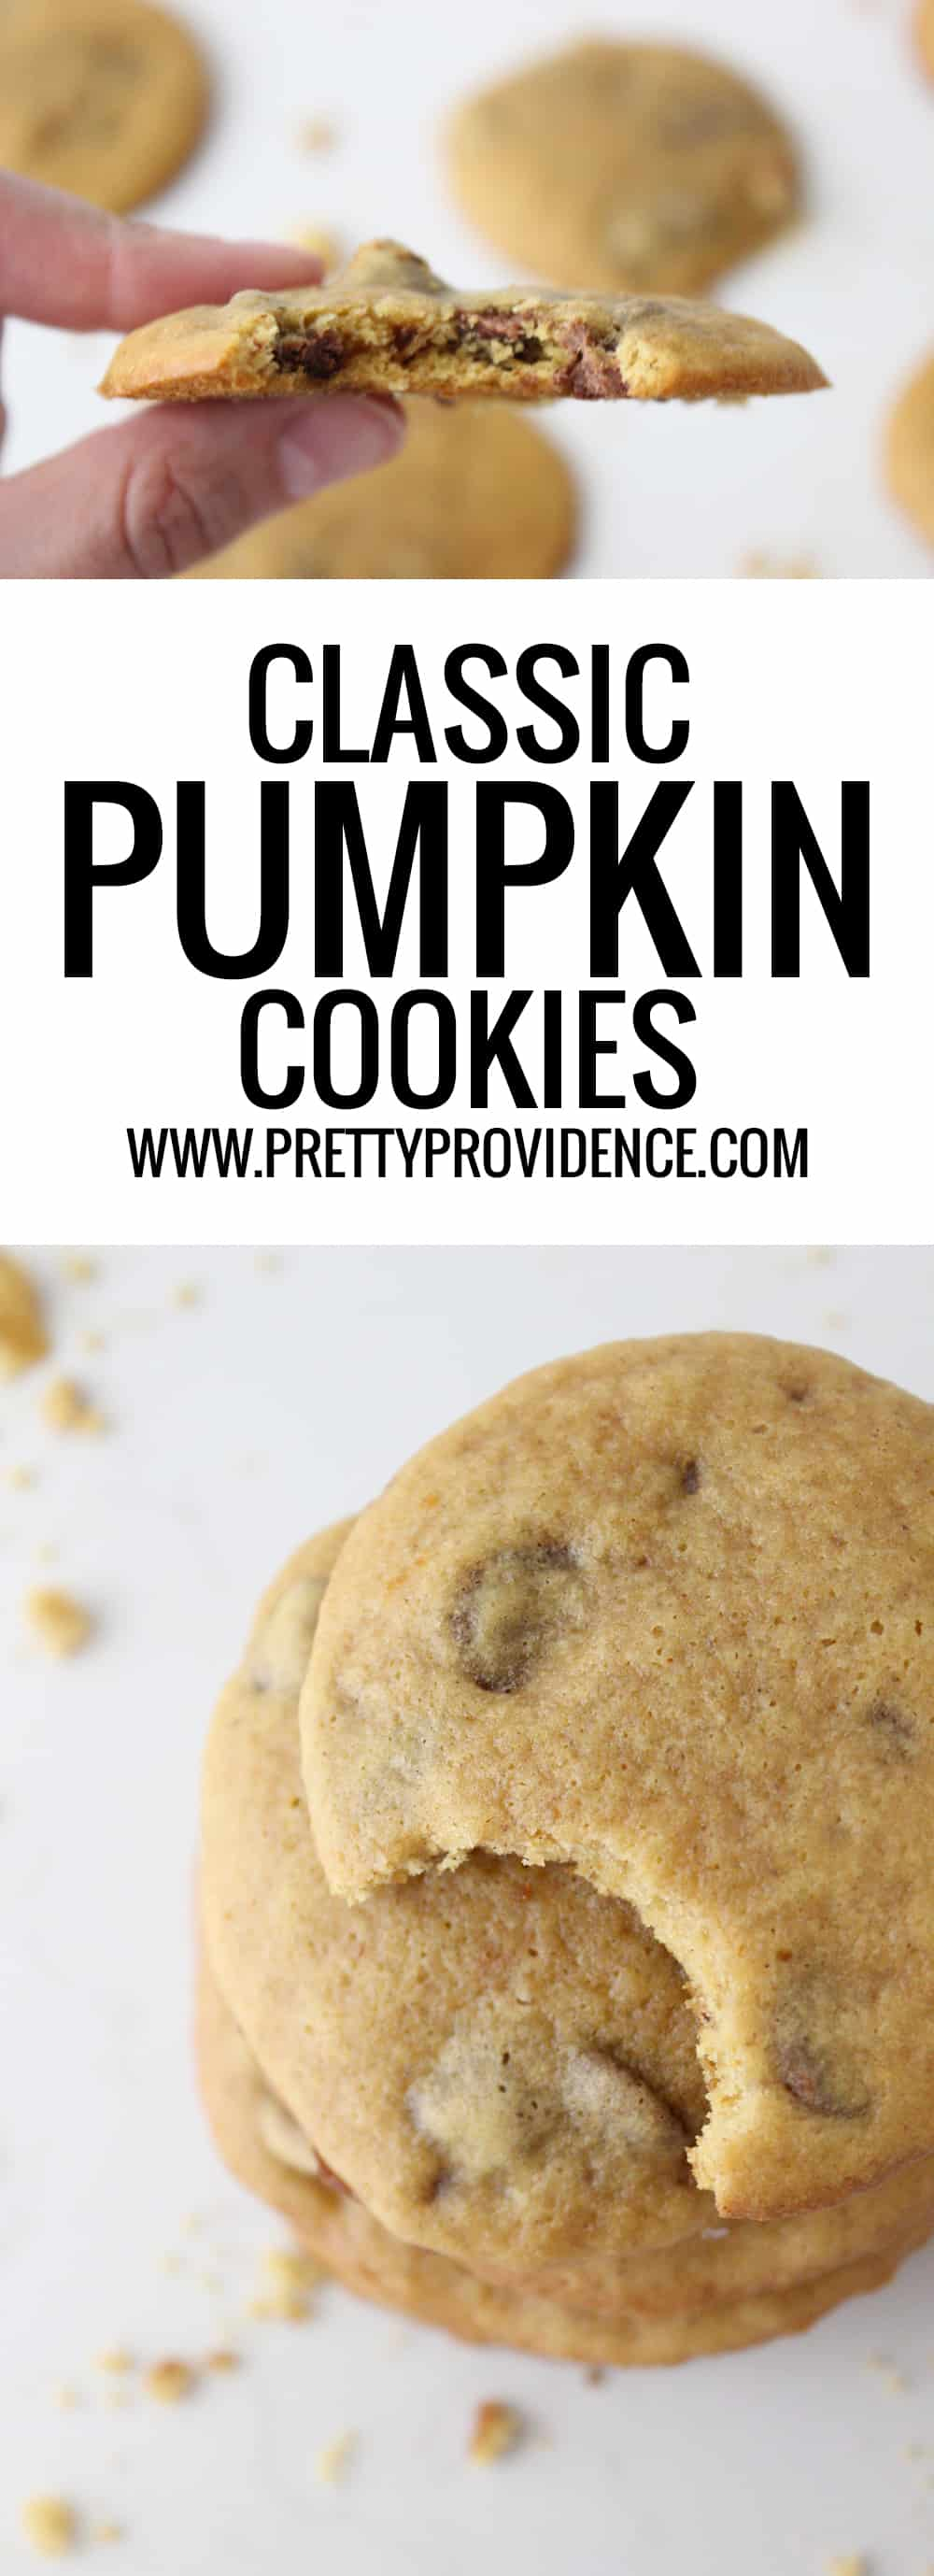 Super yummy classic pumpkin chocolate chip cookies! Super easy to whip together and feeds a crowd, the perfect recipe for fall!